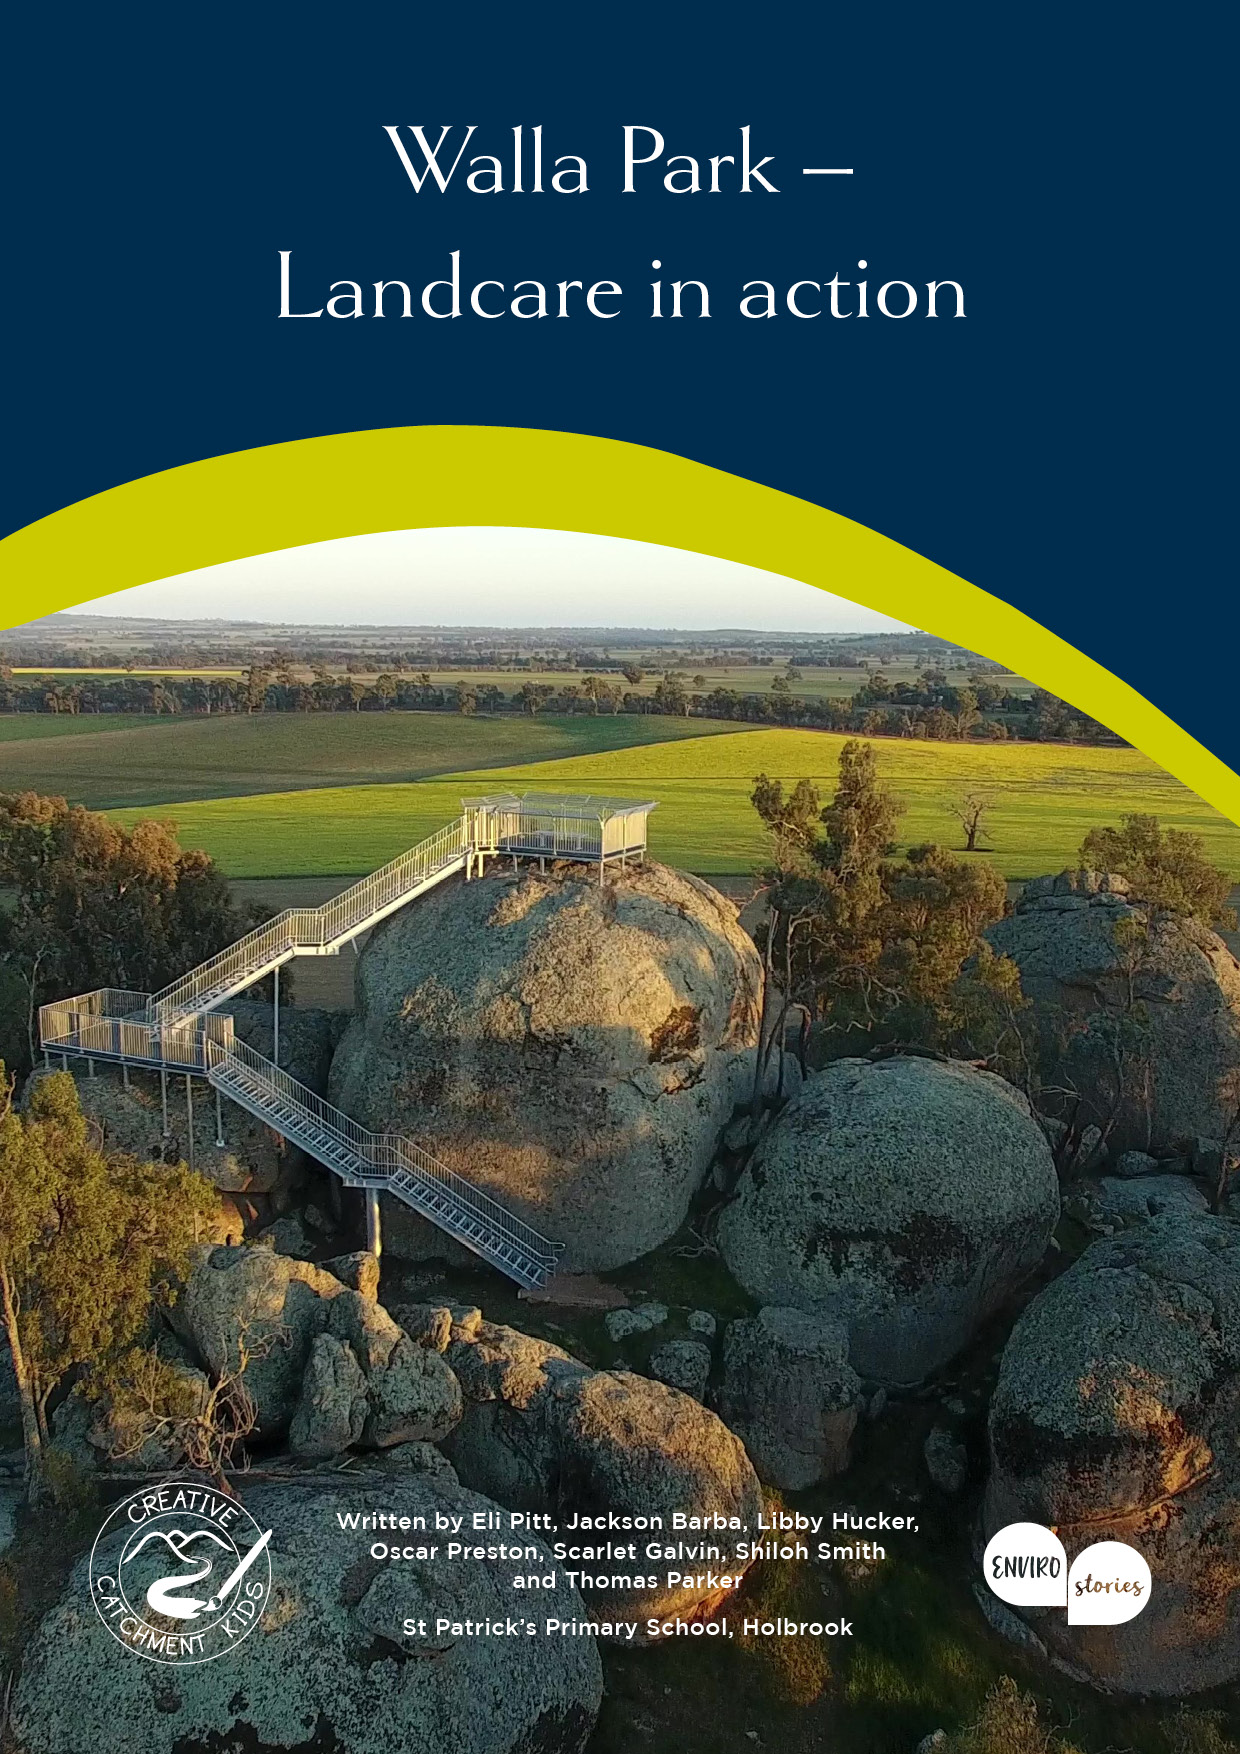 Walla Park – Landcare in action